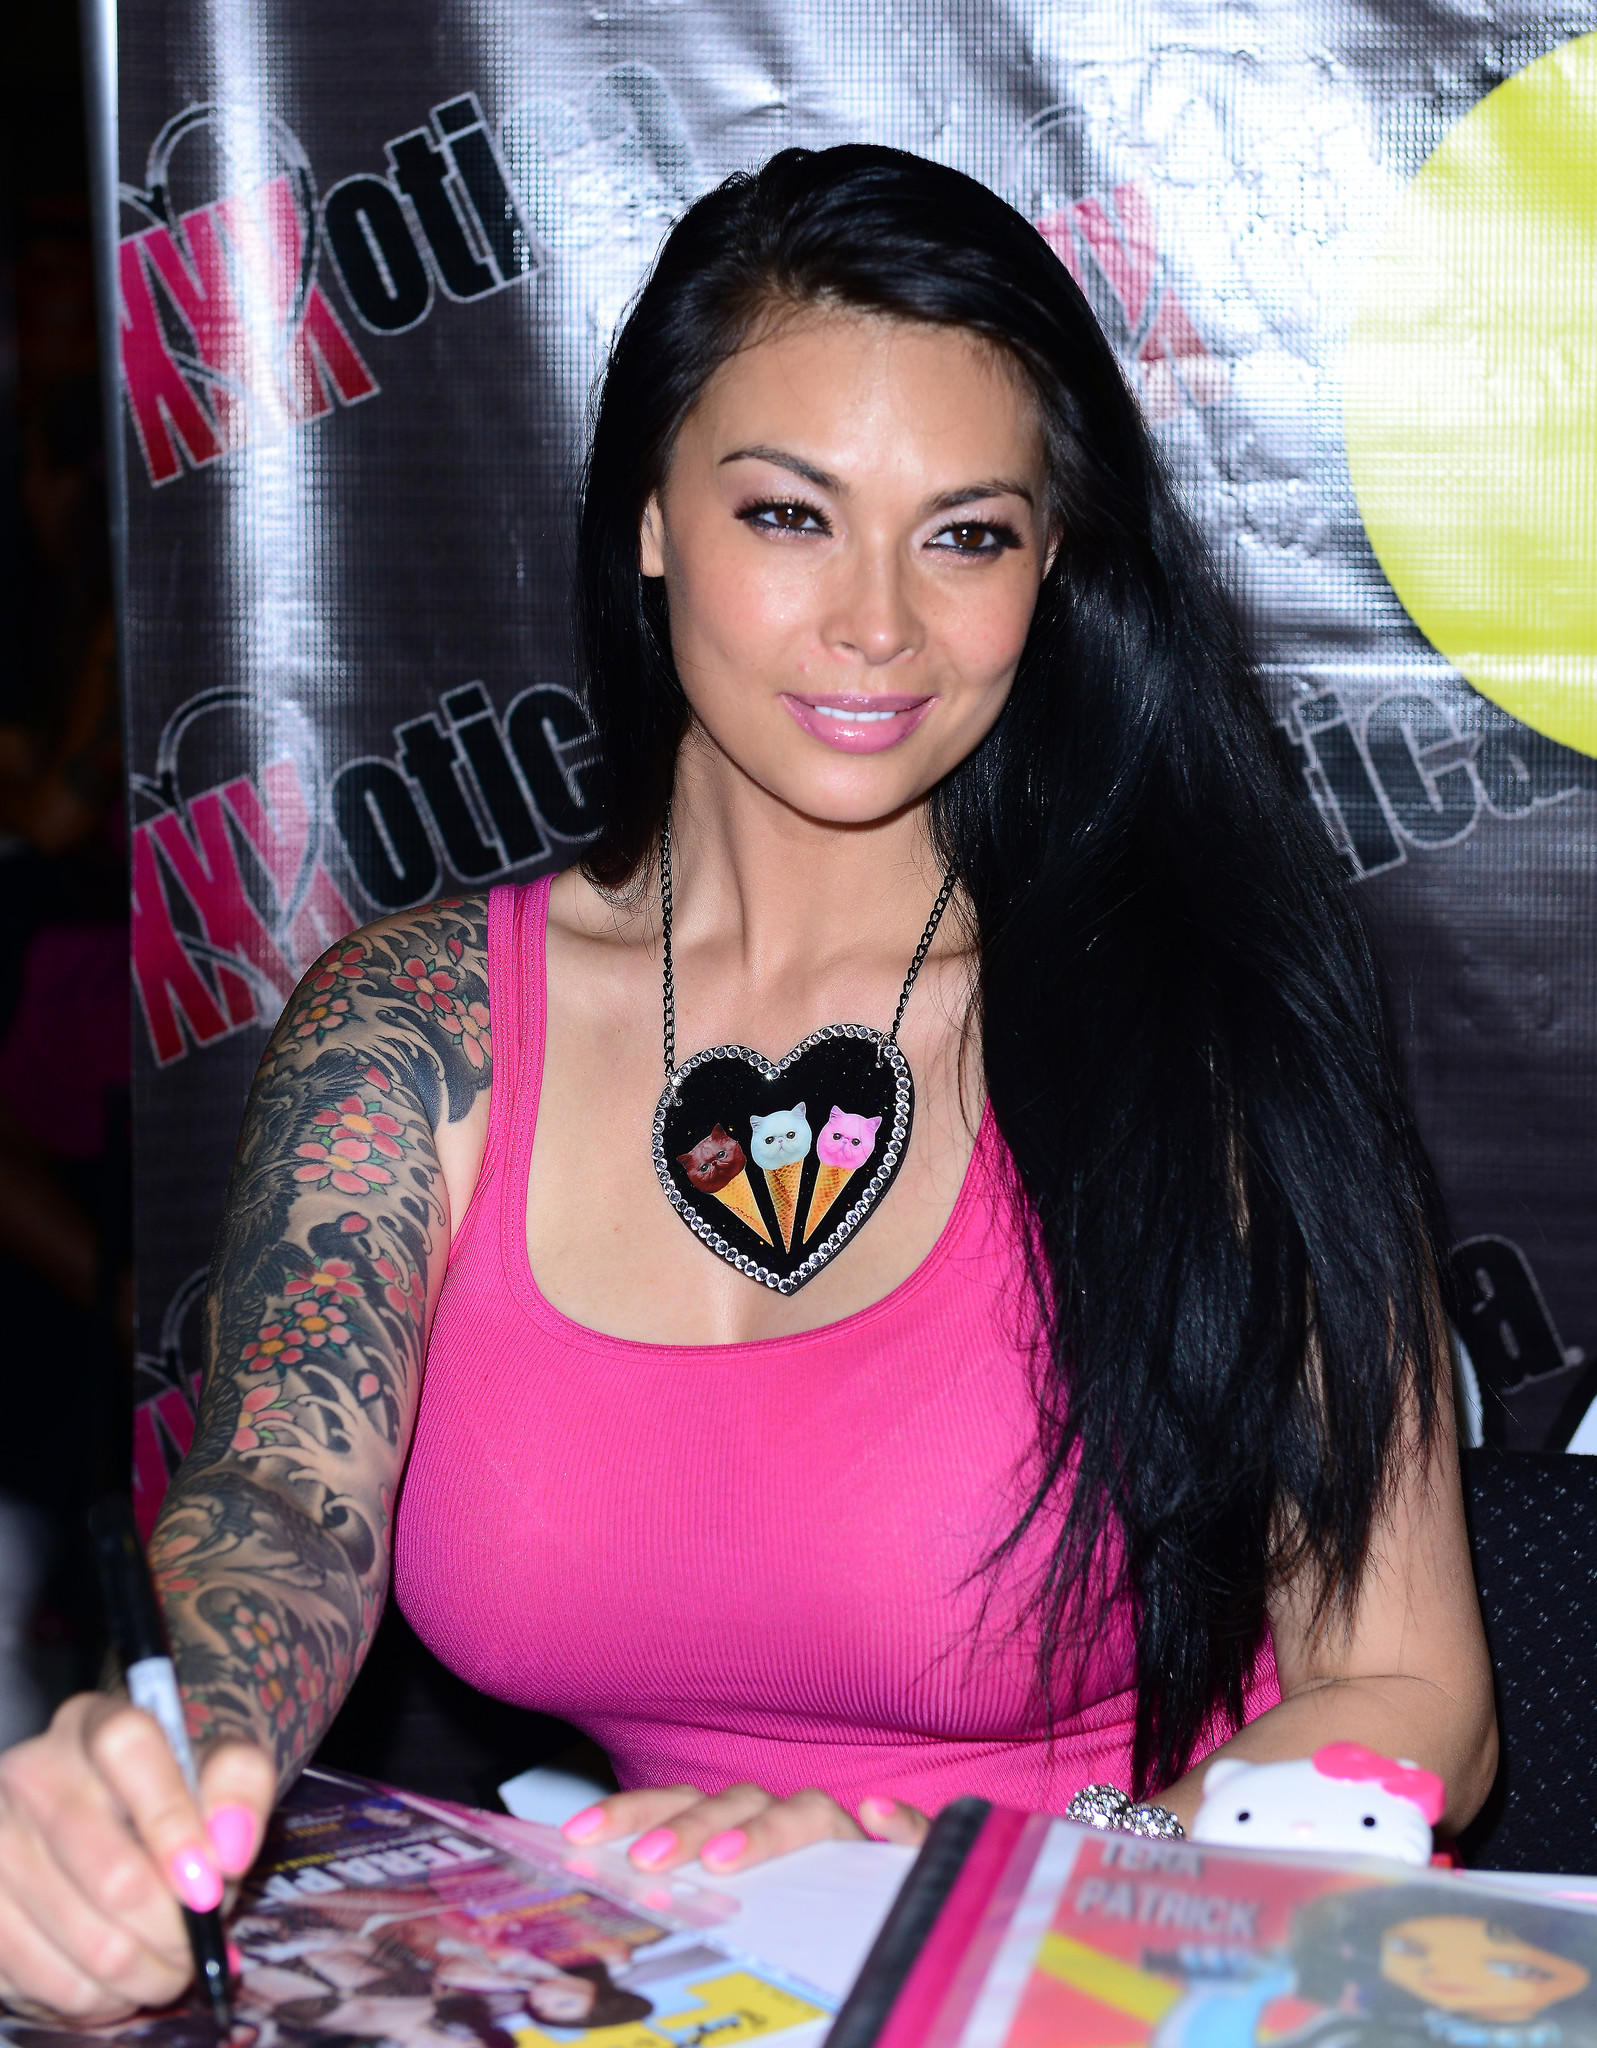 Tera Patrick appears at Exxxotica 2014 in Fort Lauderdale. (Photo by Vallery Jean/FilmMagic)